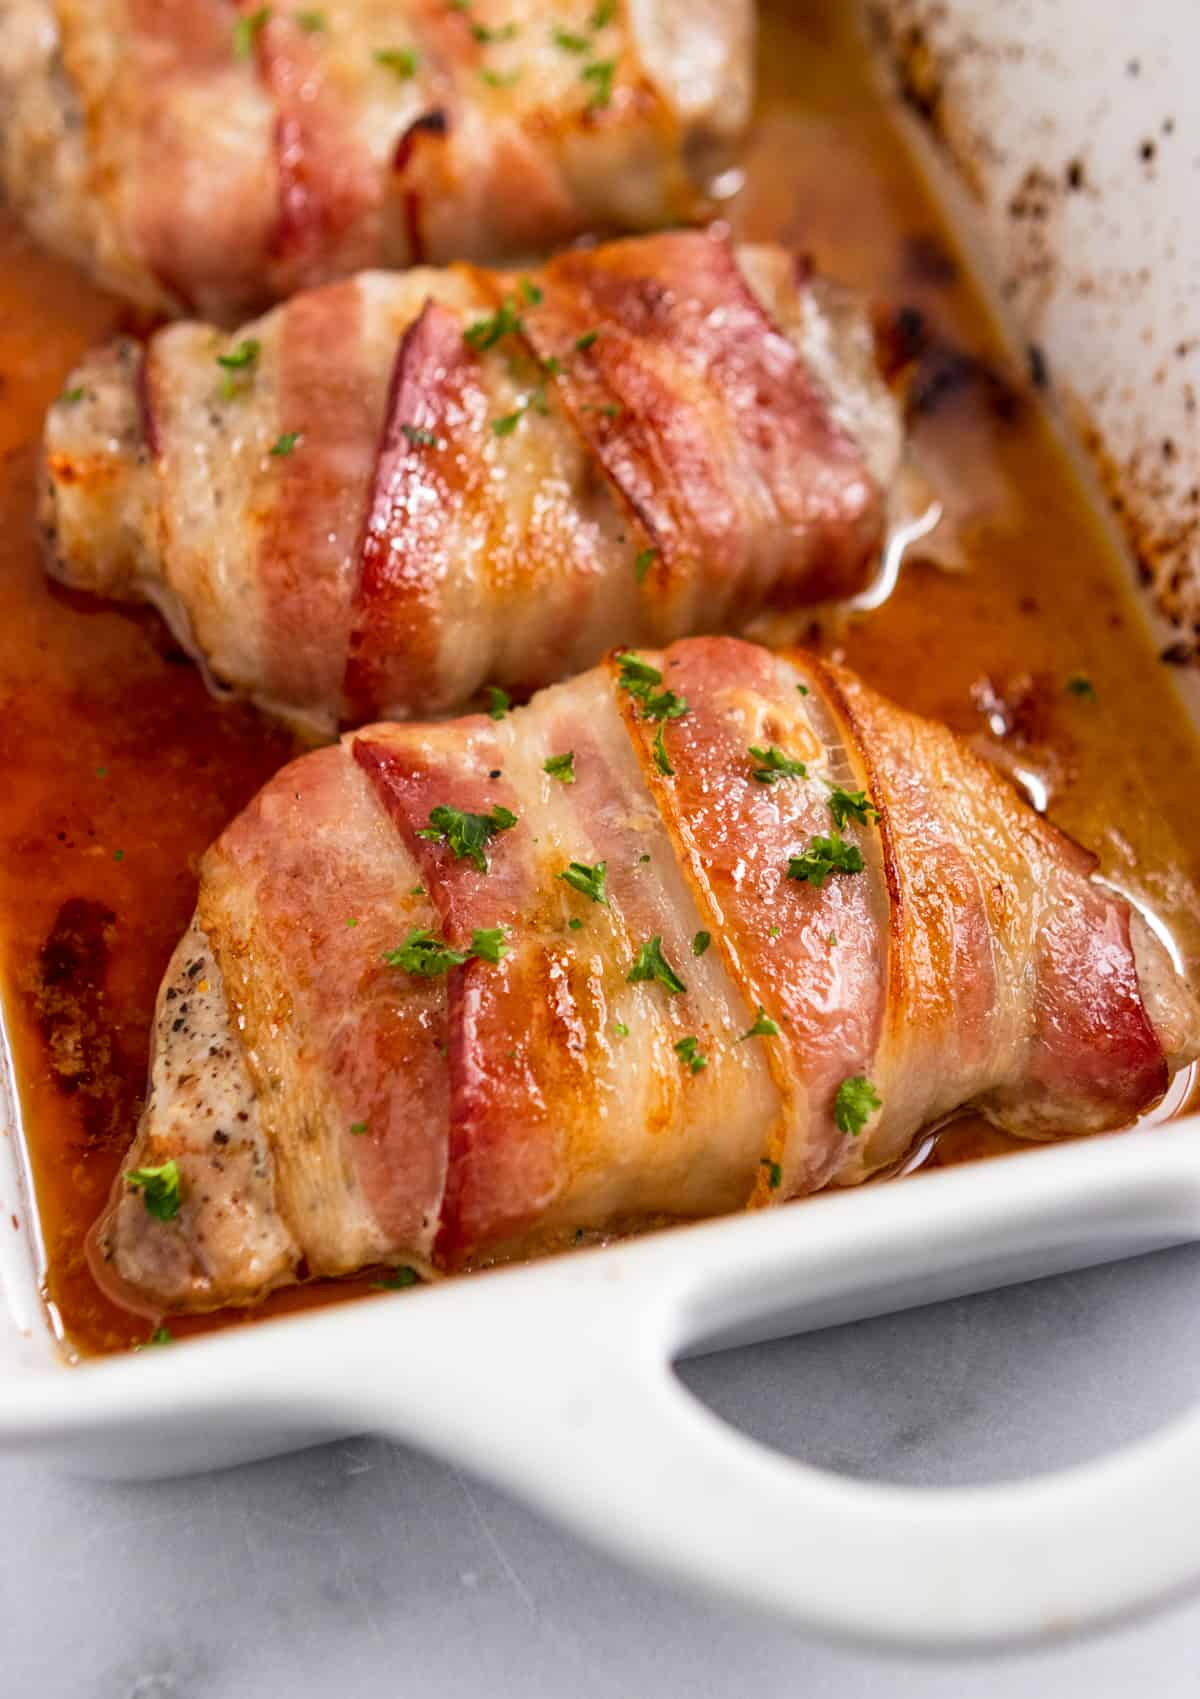 Bacon wrapped pork chops in white pan with parsley.